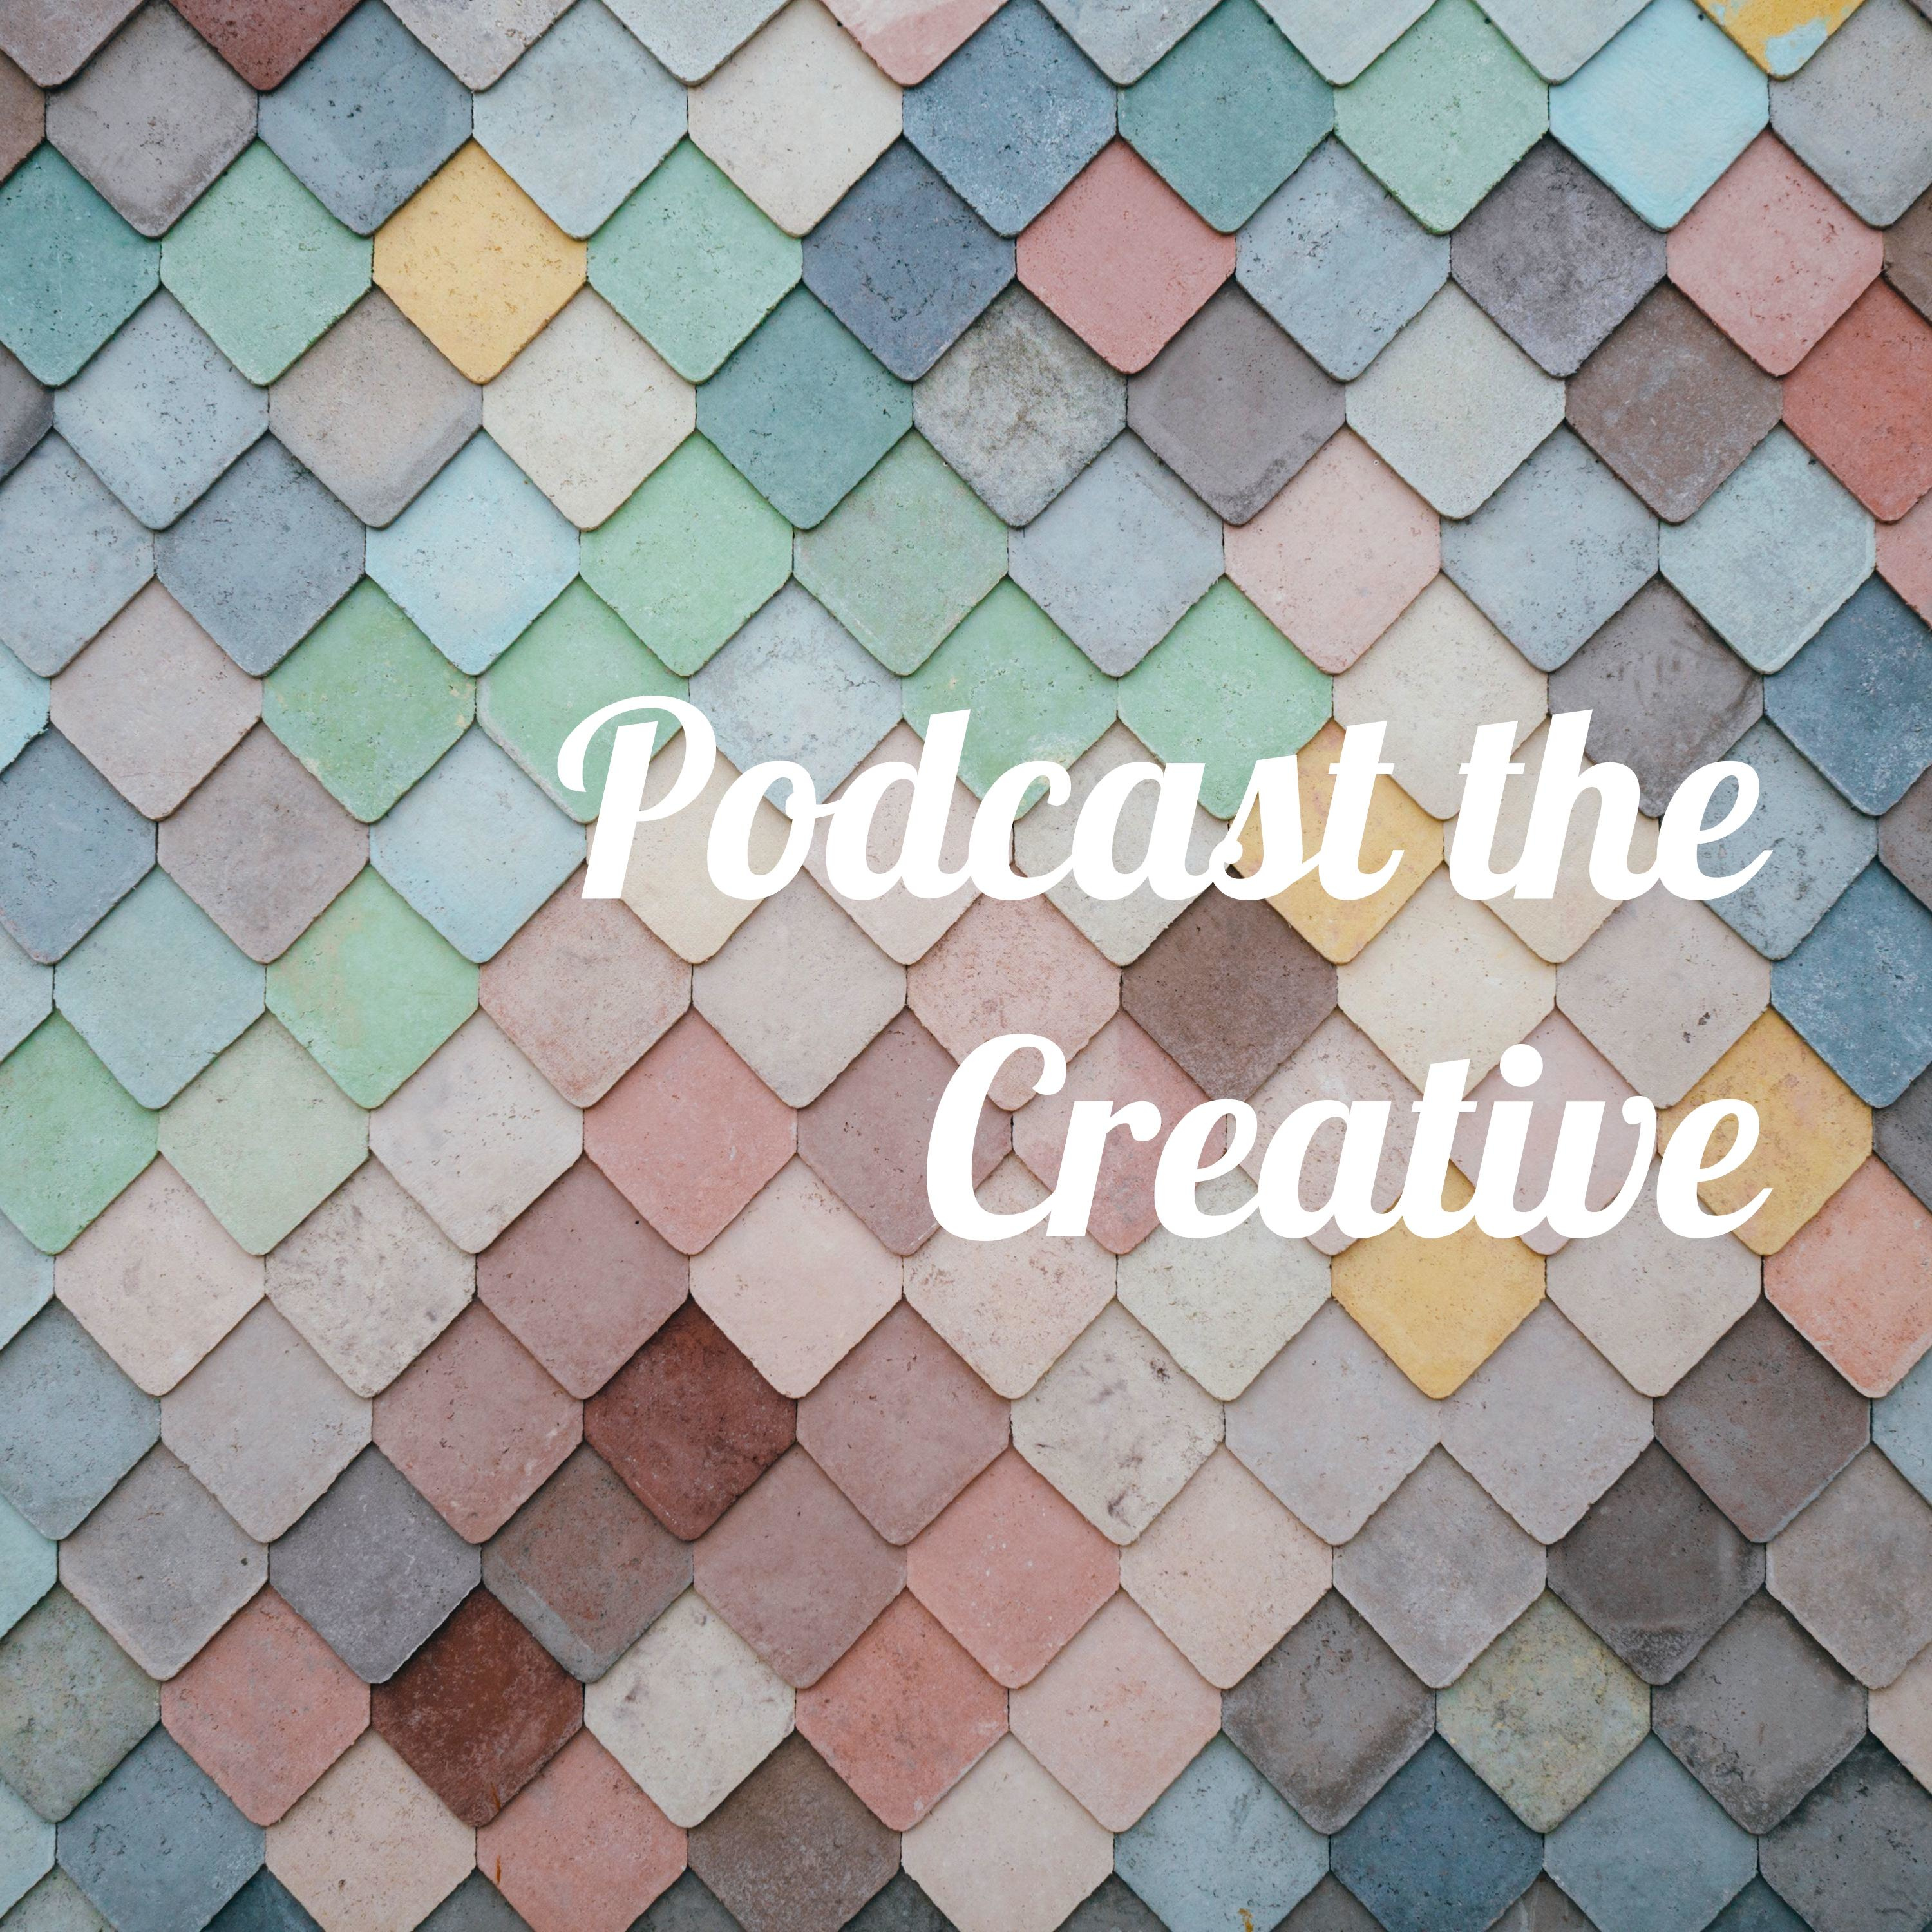 How to Start Creating w/ April